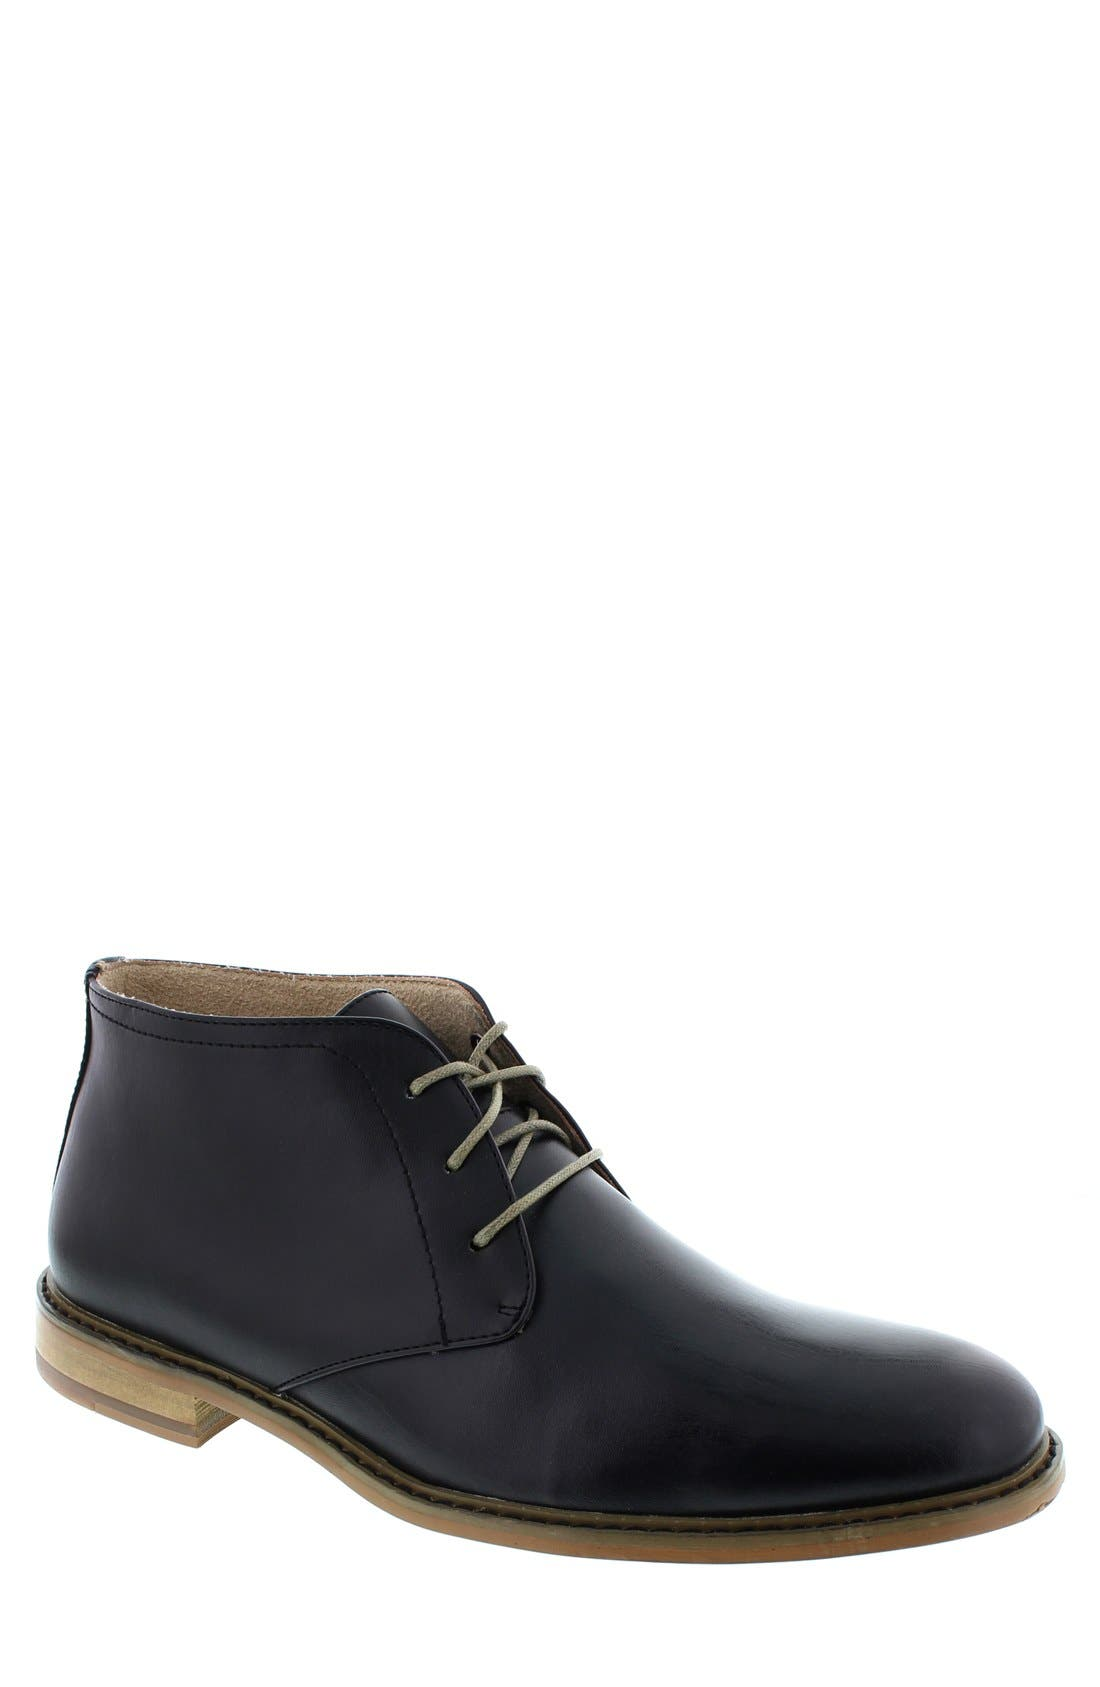 DEER STAGS 'Seattle' Leather Chukka Boot, Main, color, 001